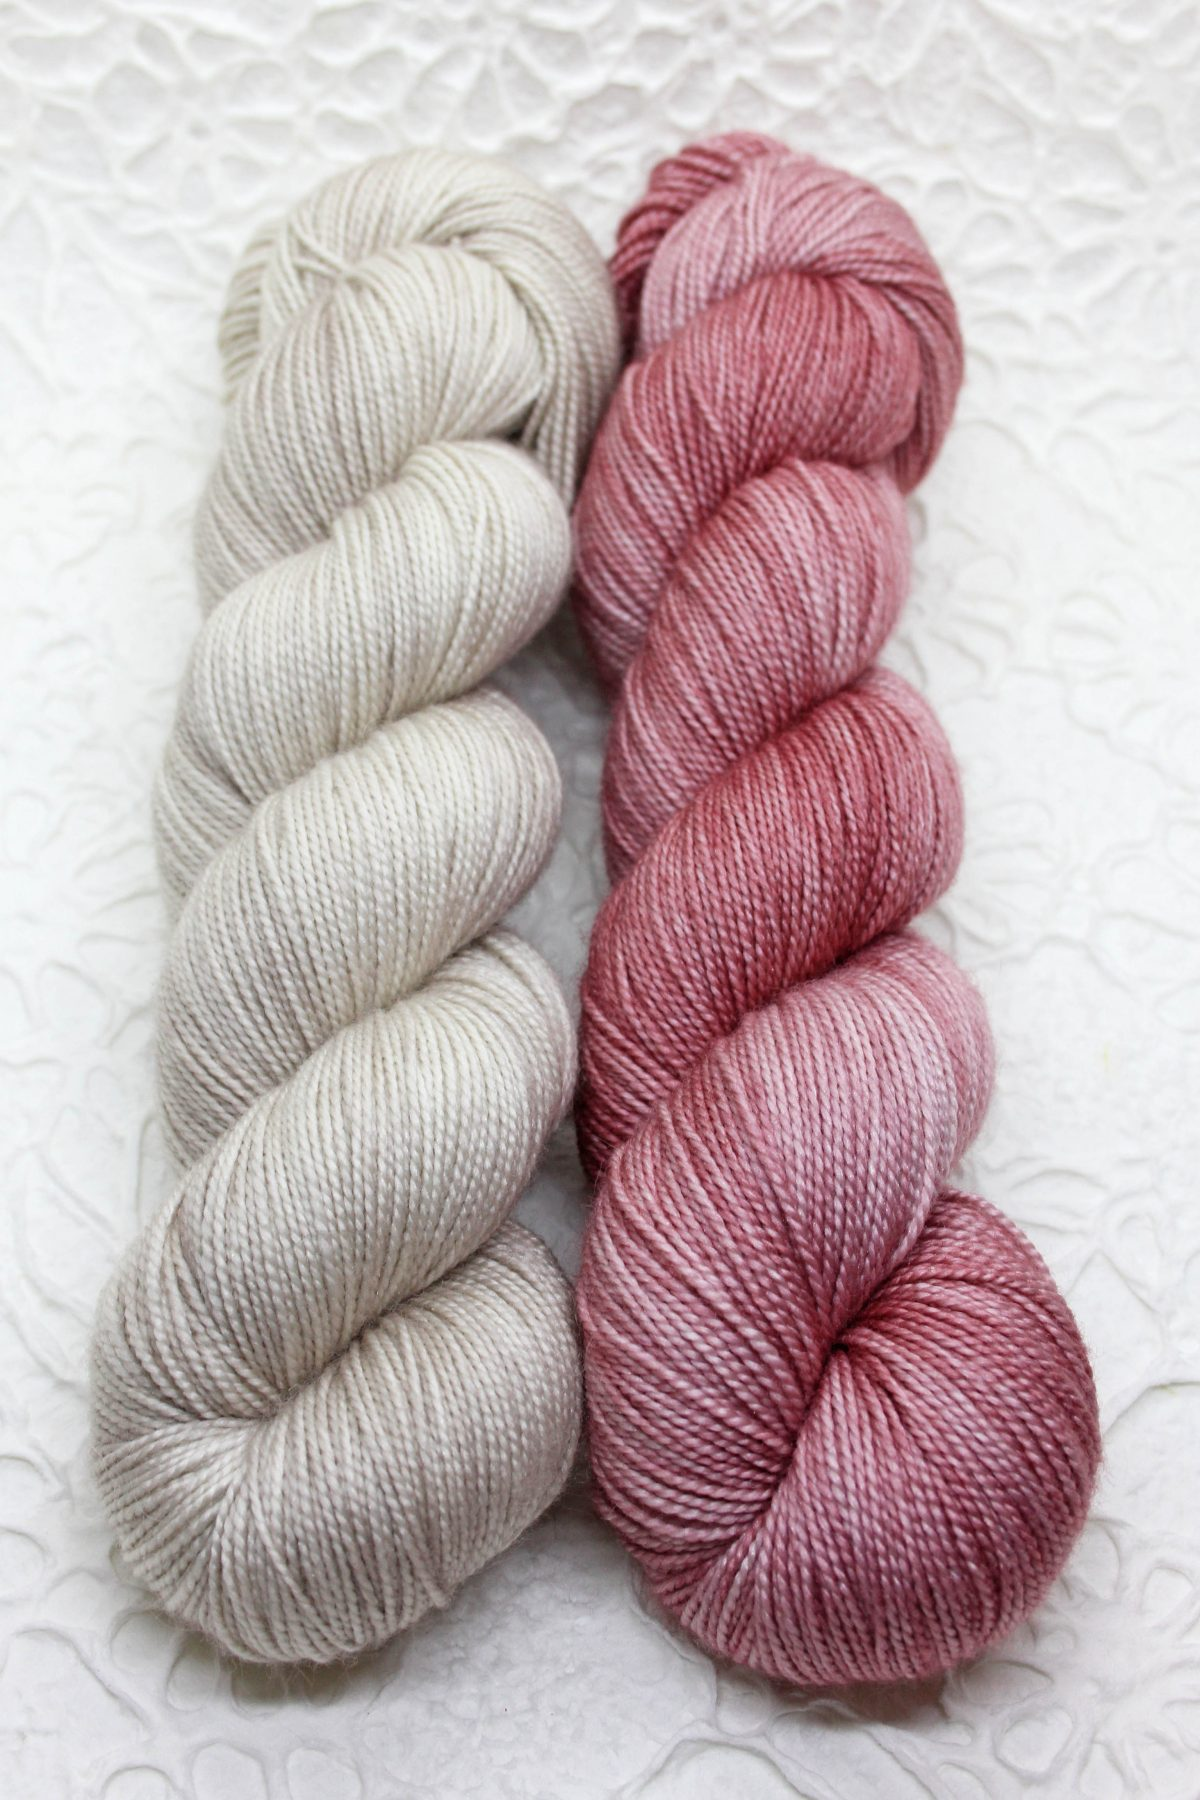 Kits 2 skeins